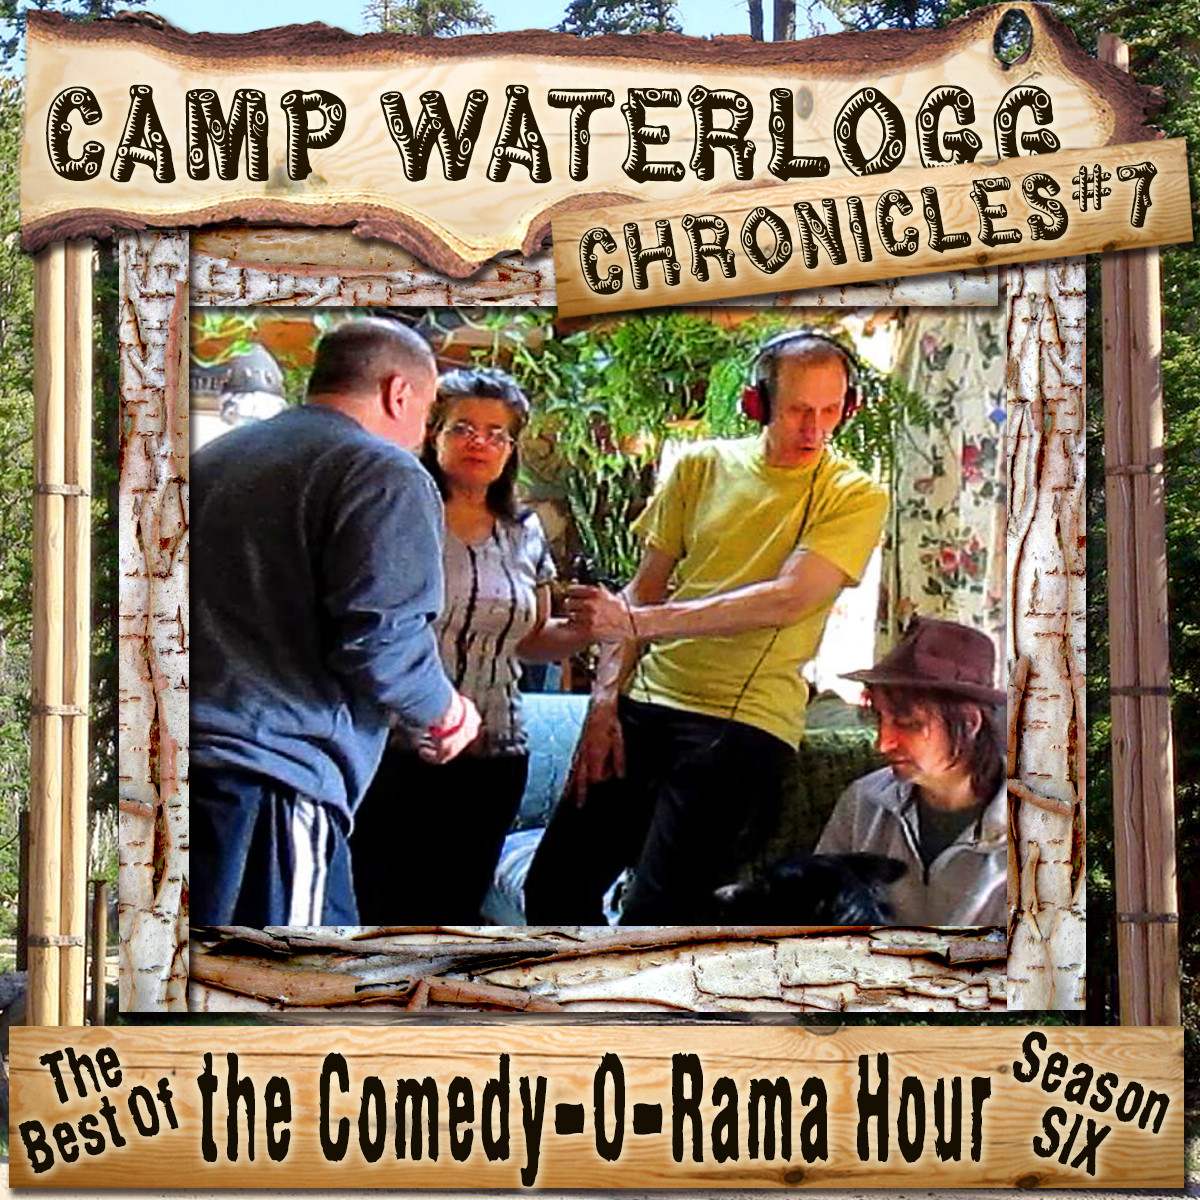 Printable The Camp Waterlogg Chronicles 7: The Best of the Comedy-O-Rama Hour, Season 6 Audiobook Cover Art